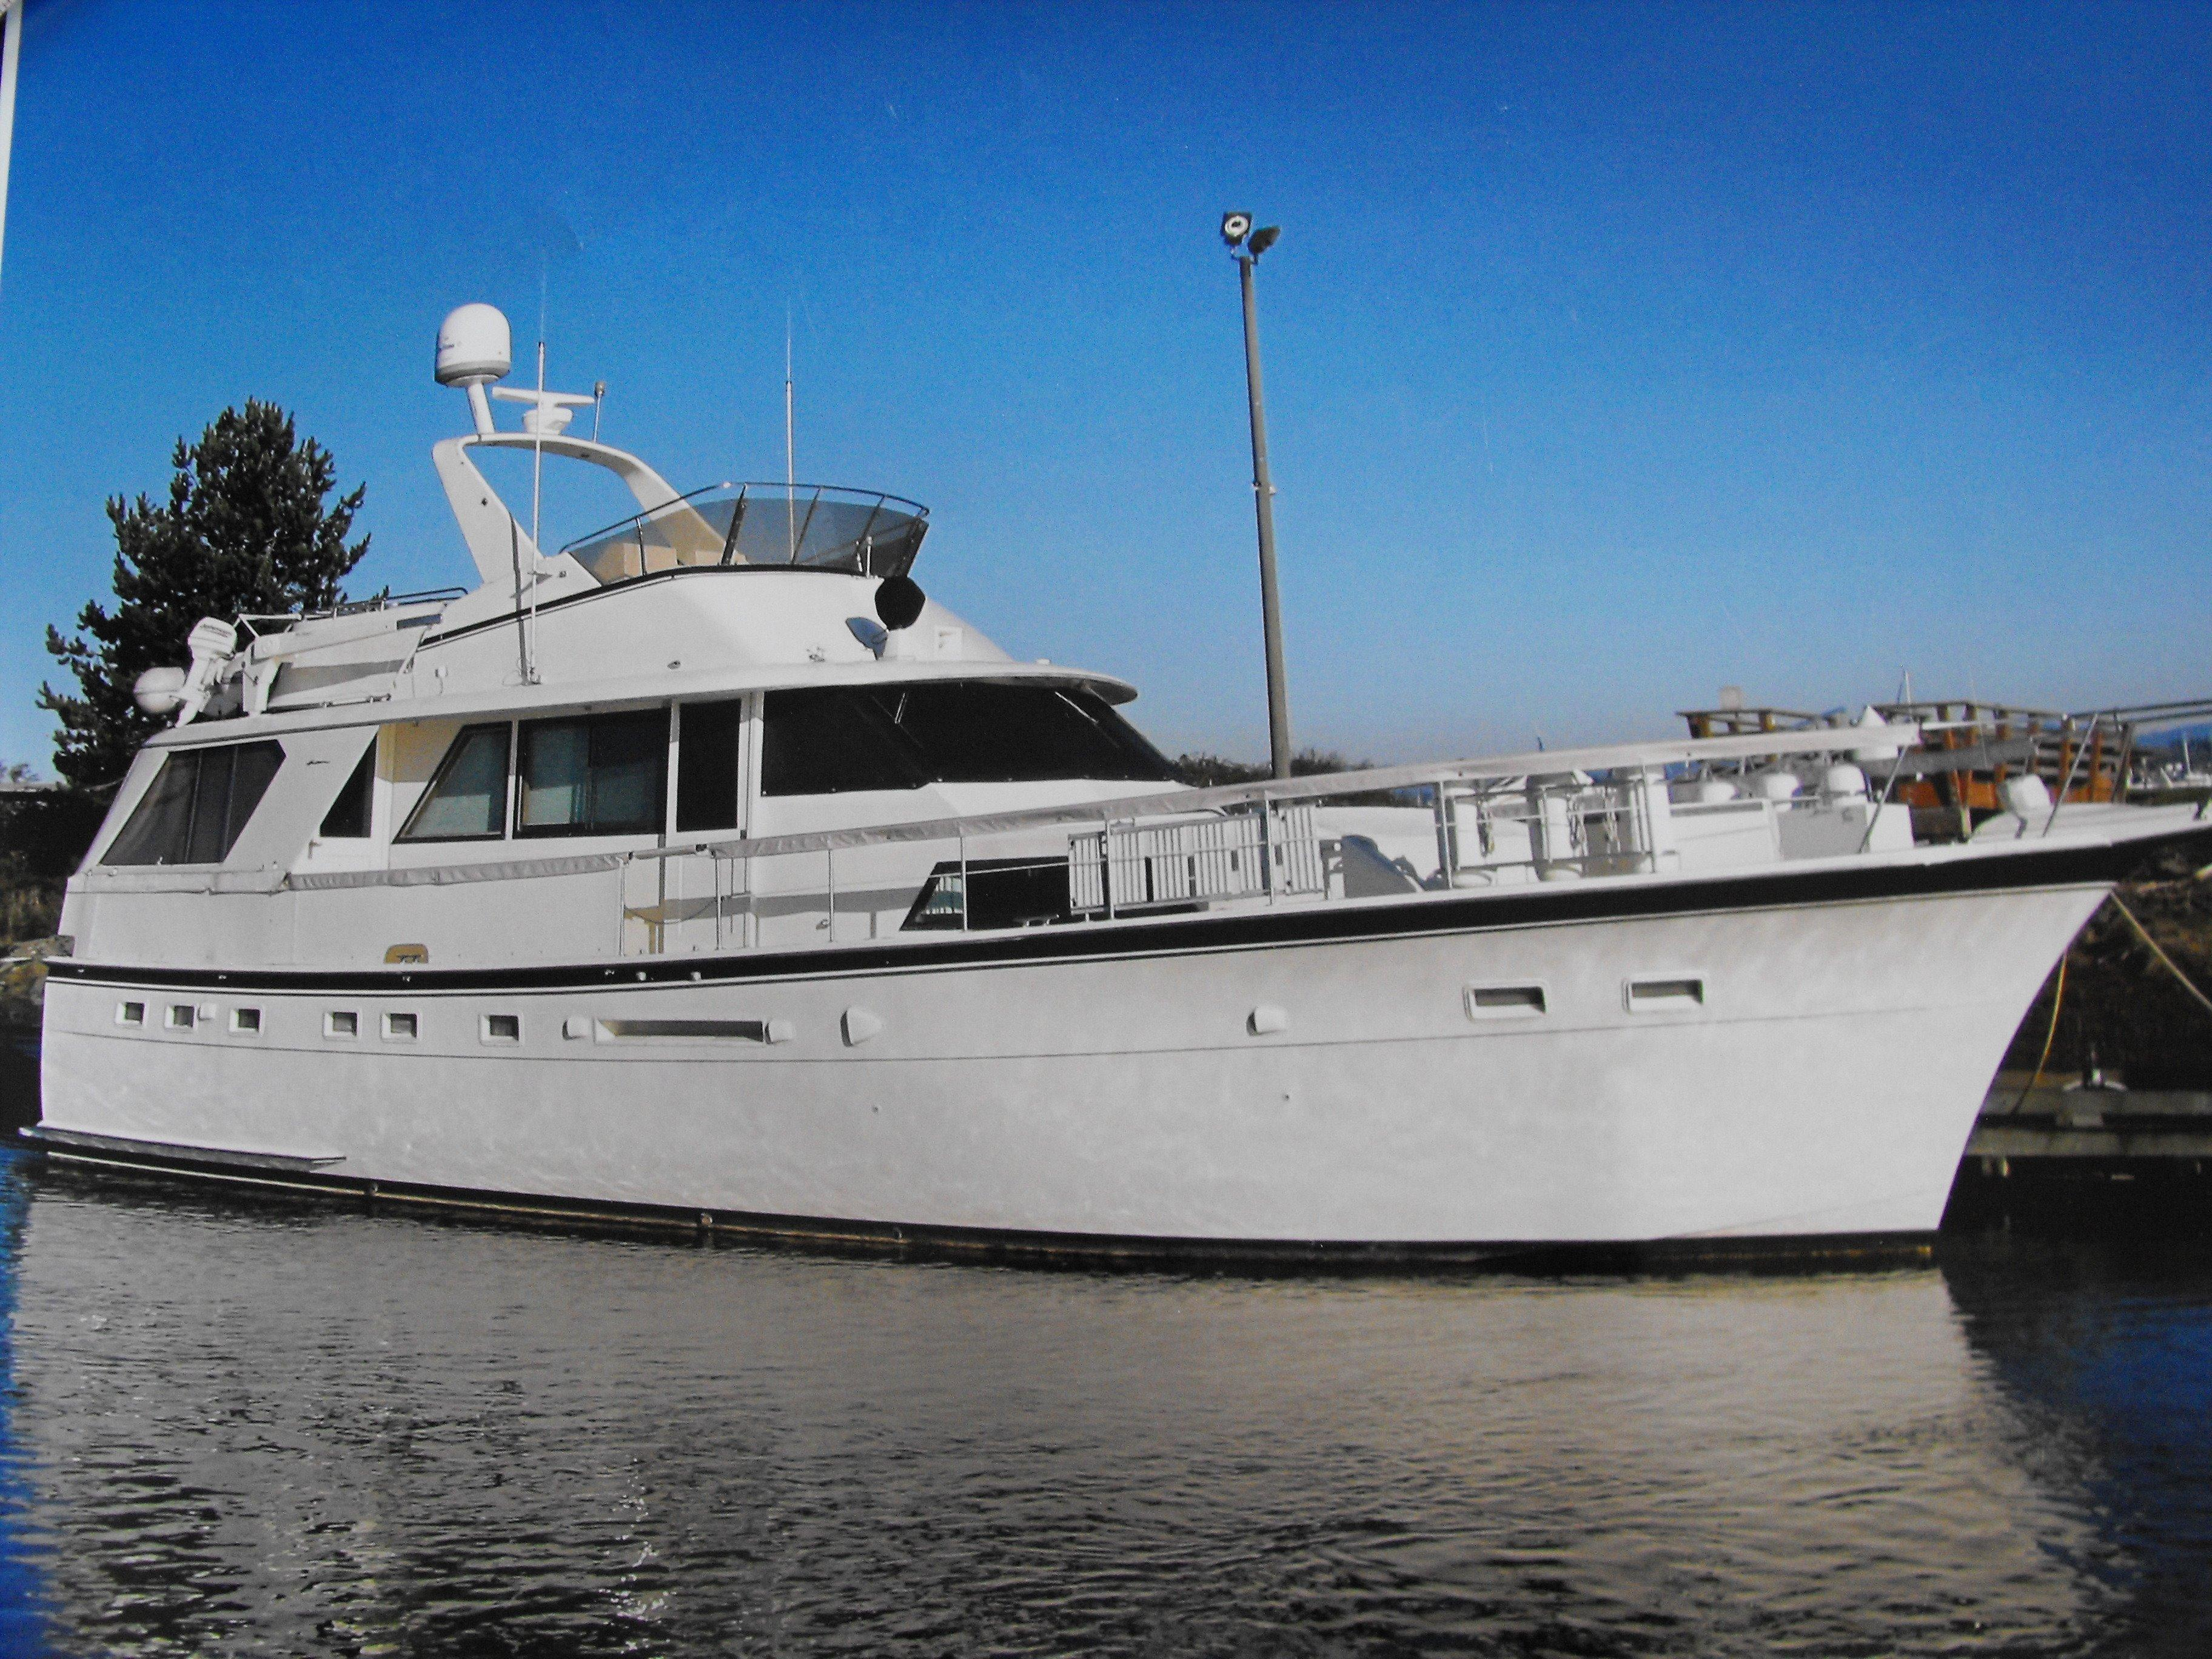 53 hatteras blue moon 1979 marysville denison yacht sales for Large motor yachts for sale